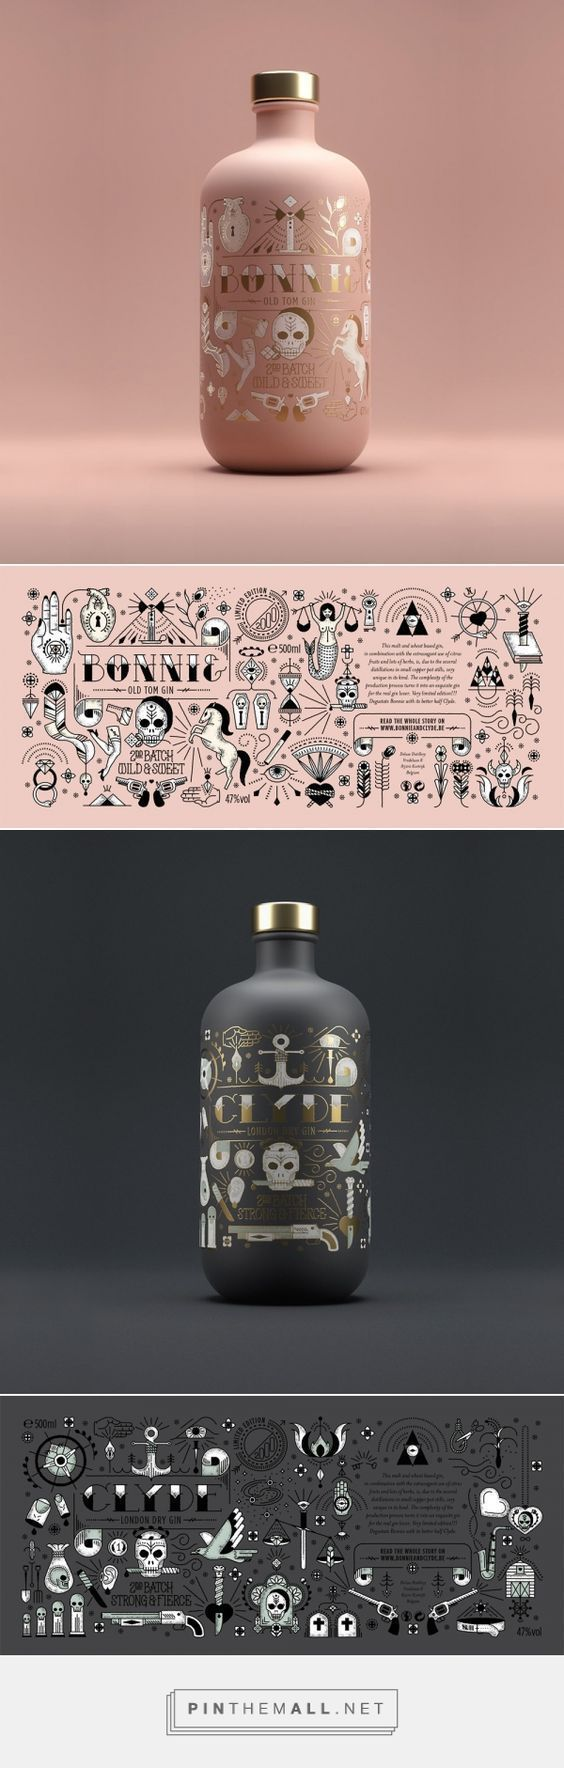 Bonnie & Clyde Gin Packaging by Pearly Yon | Fivestar Branding Agency – Design and Branding Agency & Curated Inspiration Gallery